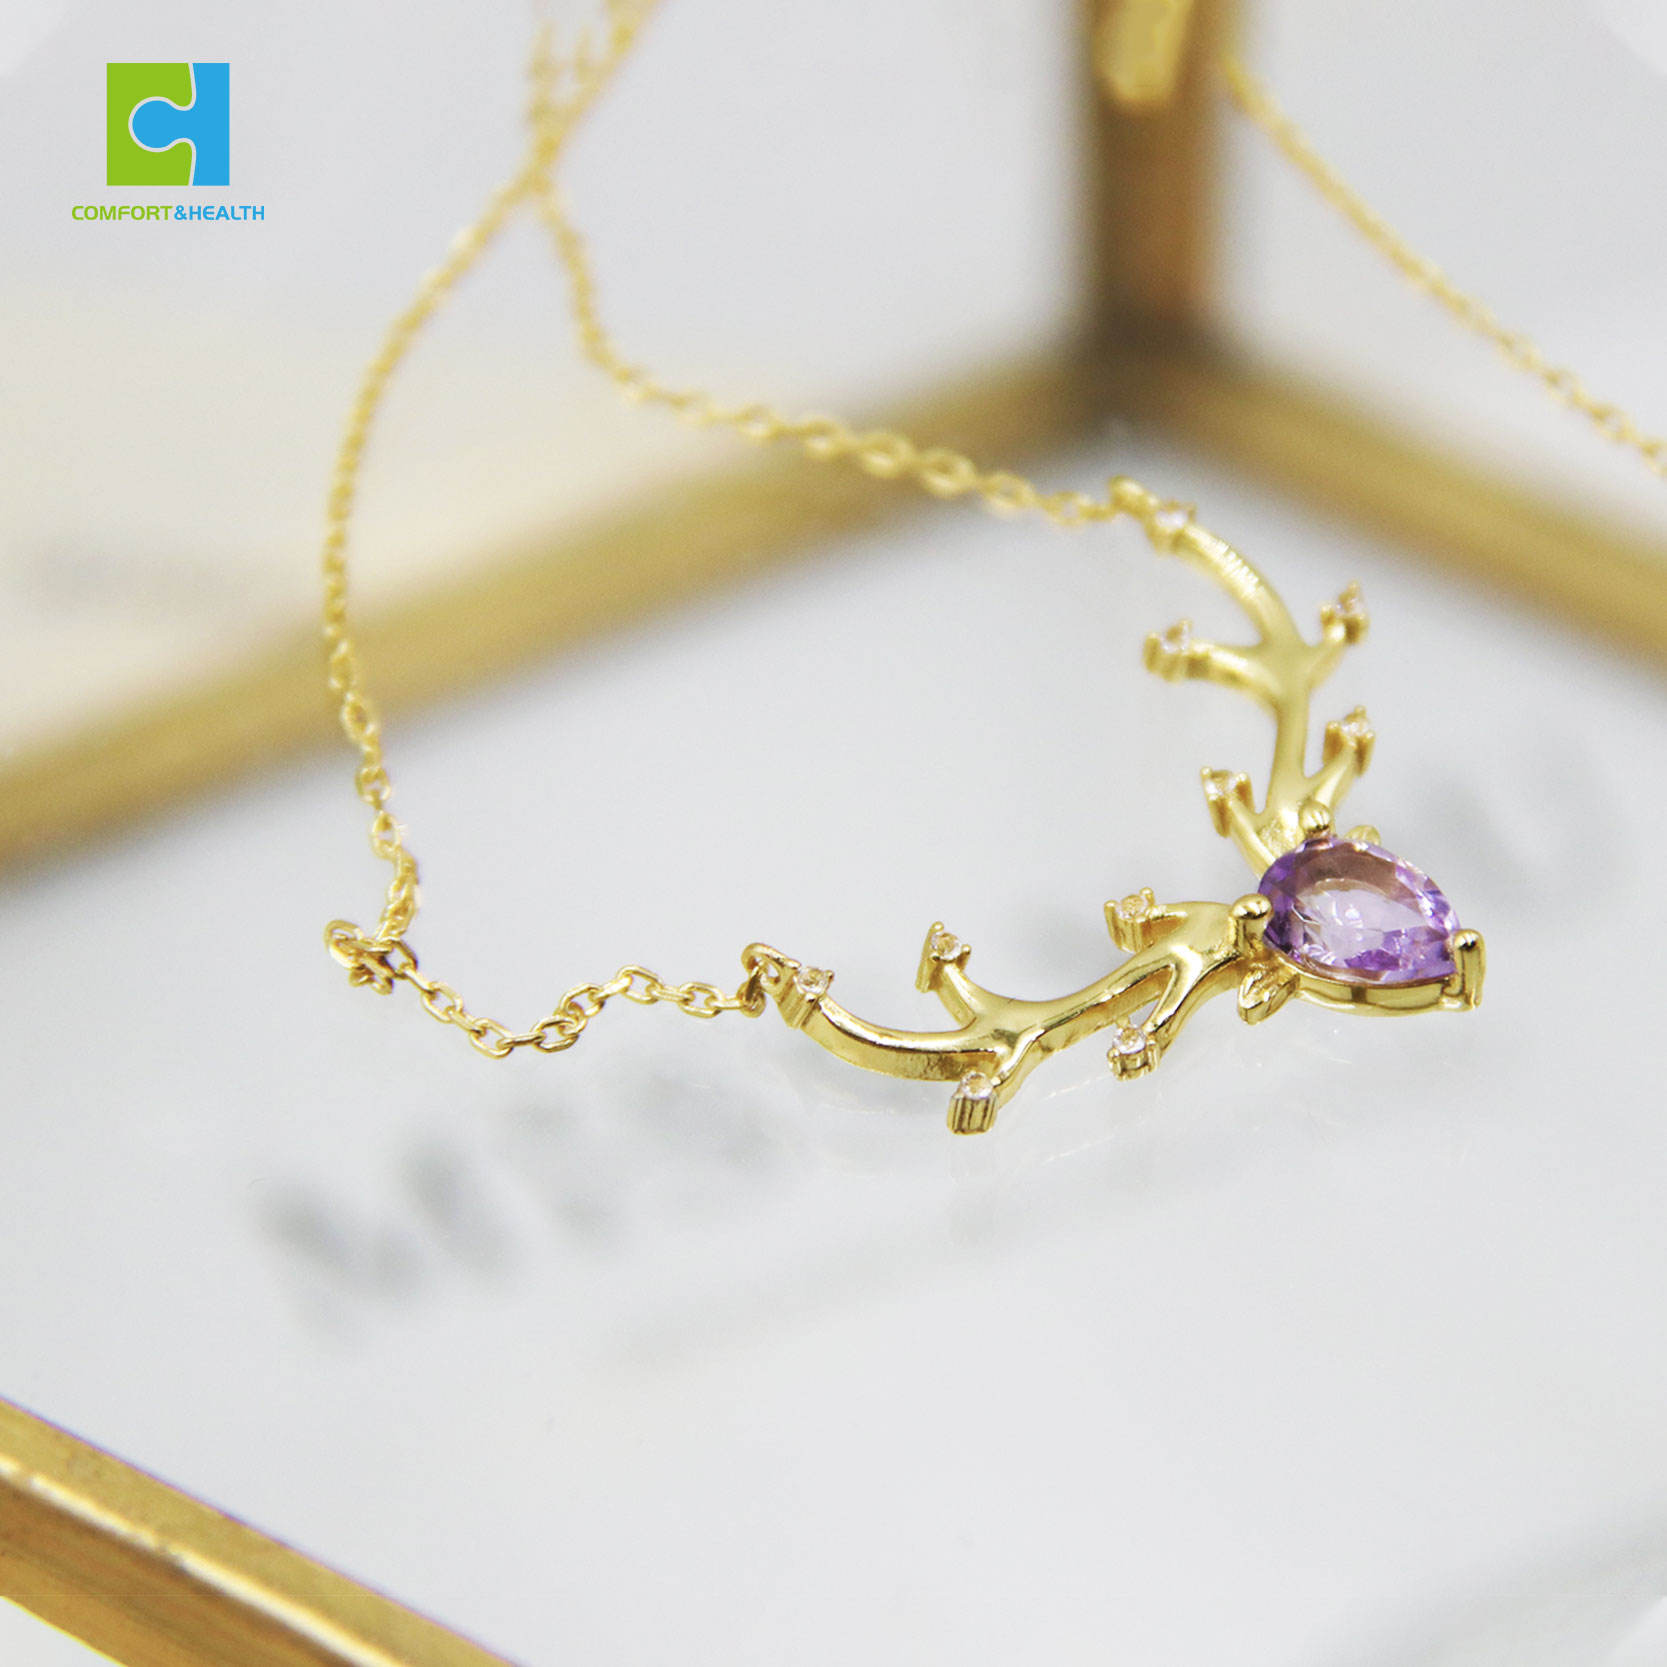 Elegant Jewelry Deer Shaped Pendant Natural Healing Crystal Necklace